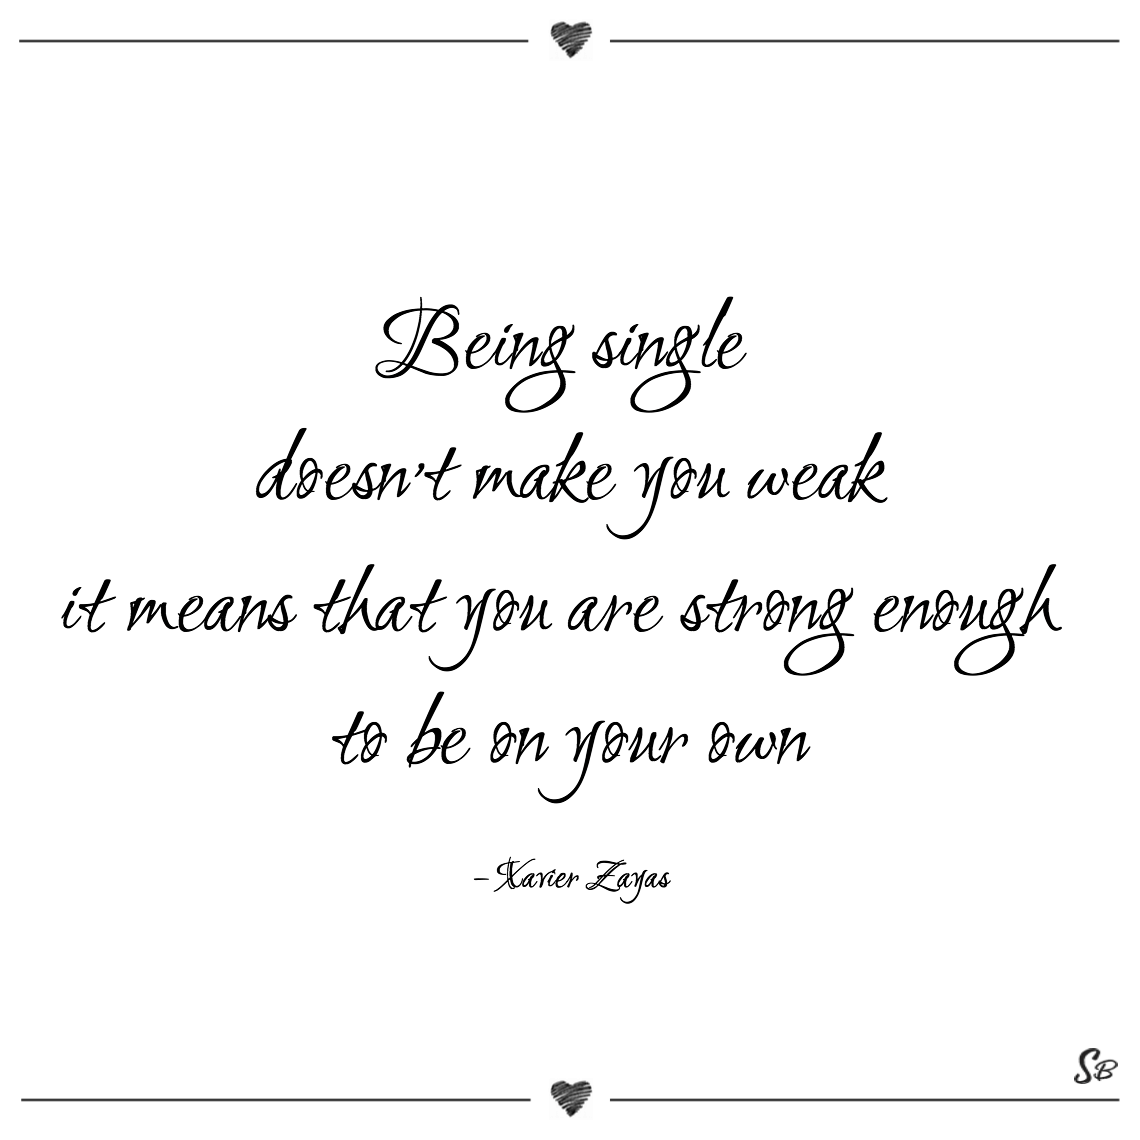 Being single doesn't make you weak it means that you are strong enough to be on your own xavier zayas being single quotes